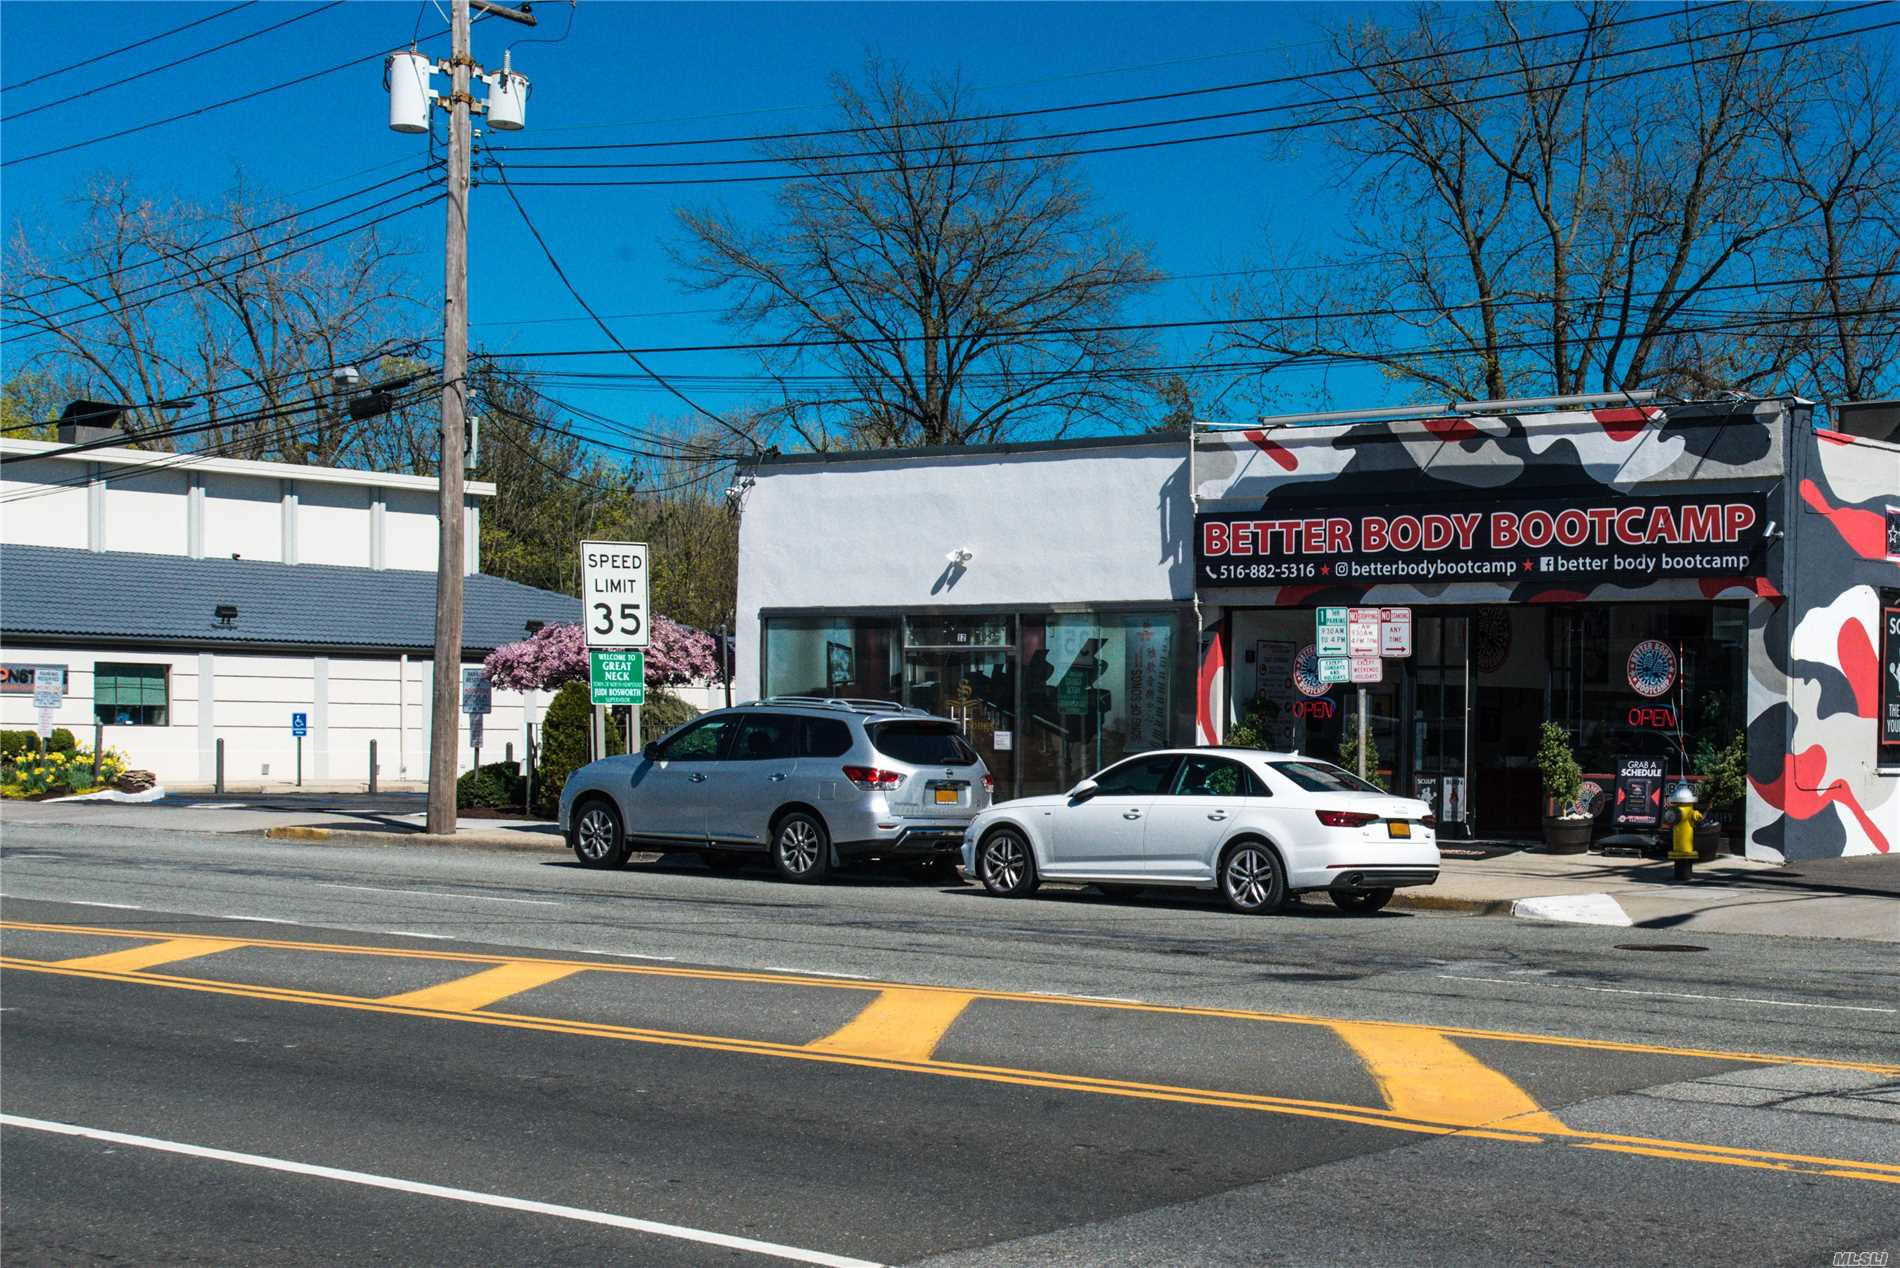 The property consists of a retail space located in Great Neck right on Northern Blvd. The space is approximately 2, 500 sq ft of ground floor retail with approximately 375 sq ft of basement space, with 25 feet of frontage on Northern Blvd. This is the perfect opportunity to secure a storefront on one of the major thruways in Long Island and Queens.